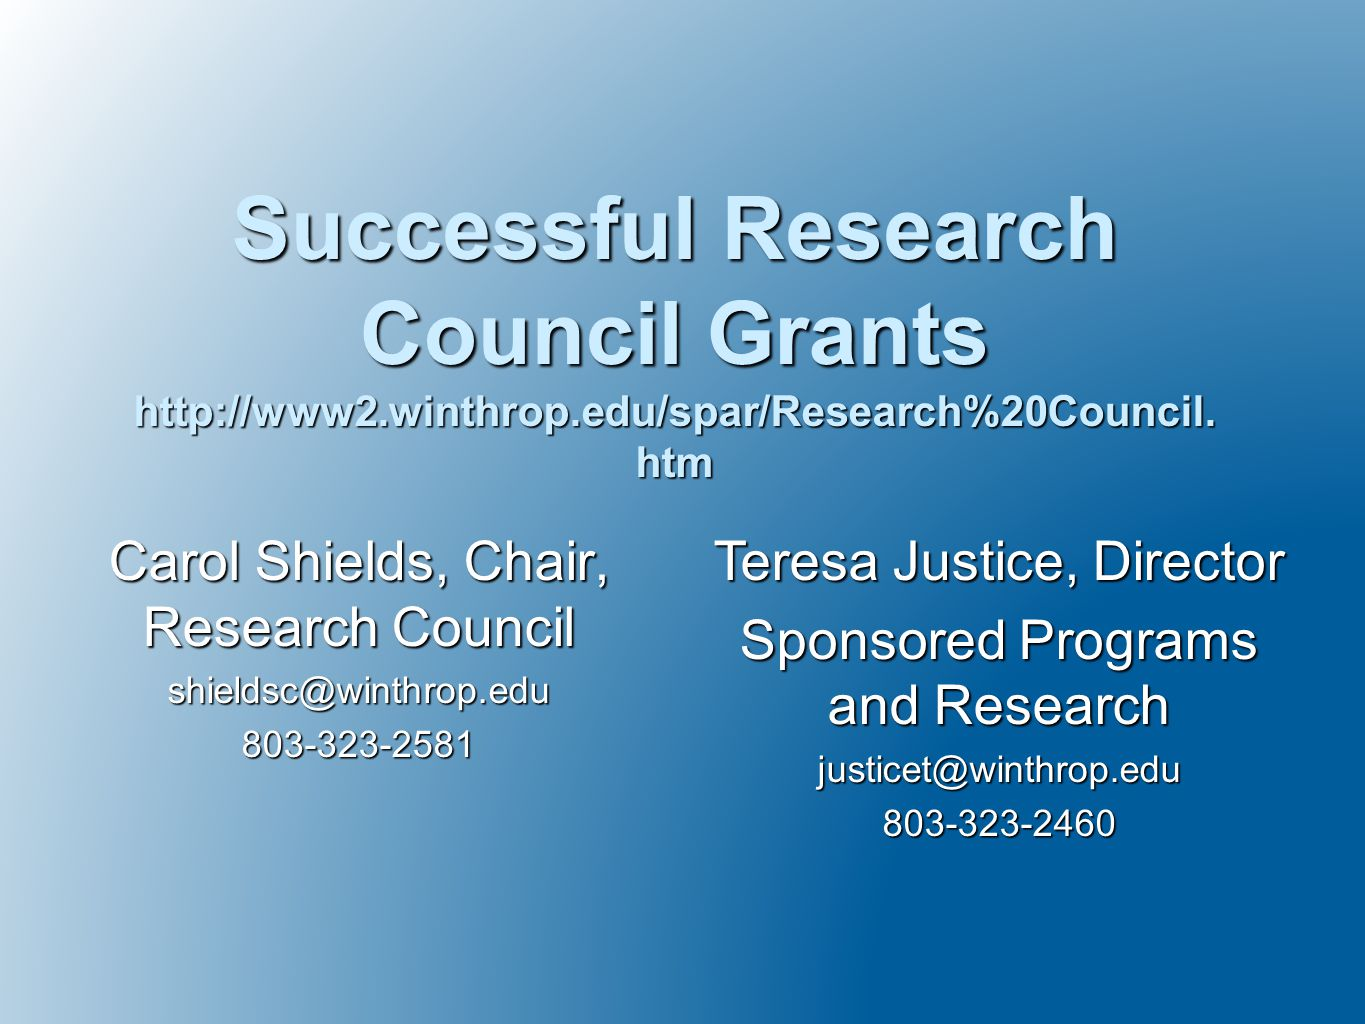 Carol Shields, Chair, Research Council shieldsc@winthrop.edu803-323-2581 Successful Research Council Grants http://www2.winthrop.edu/spar/Research%20Council.